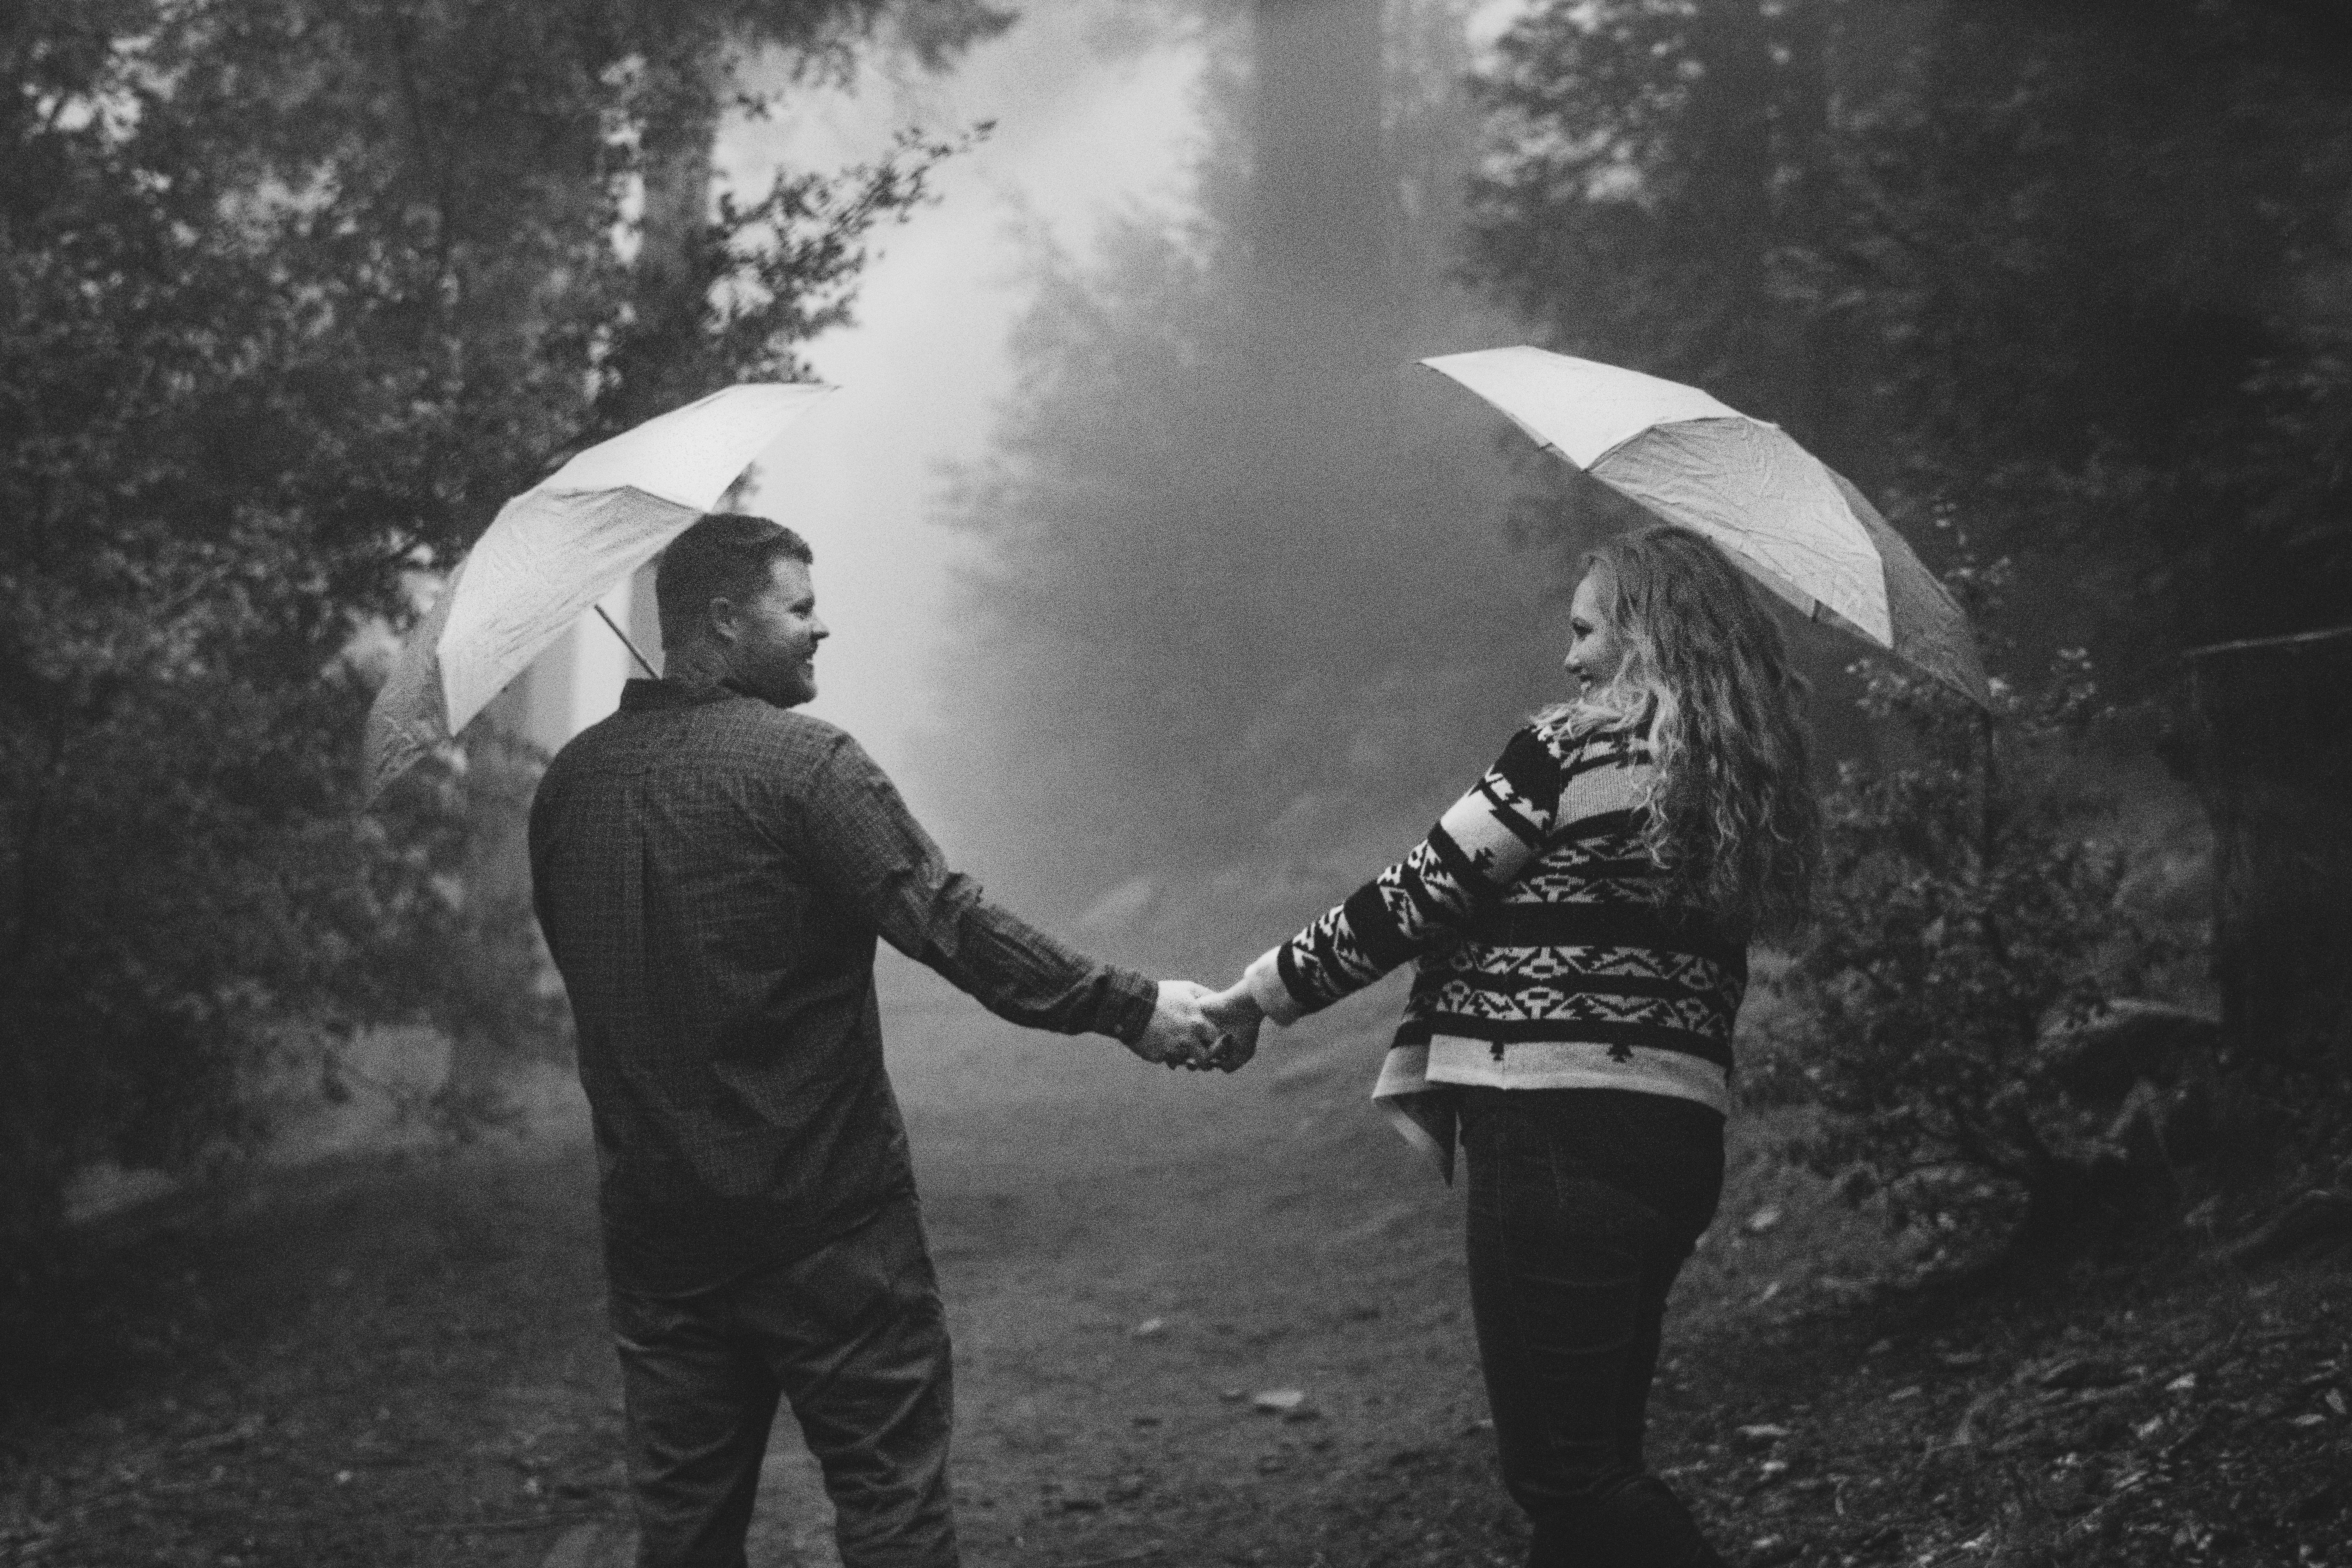 Couple Holding Hands in the Forest with Umbrellas